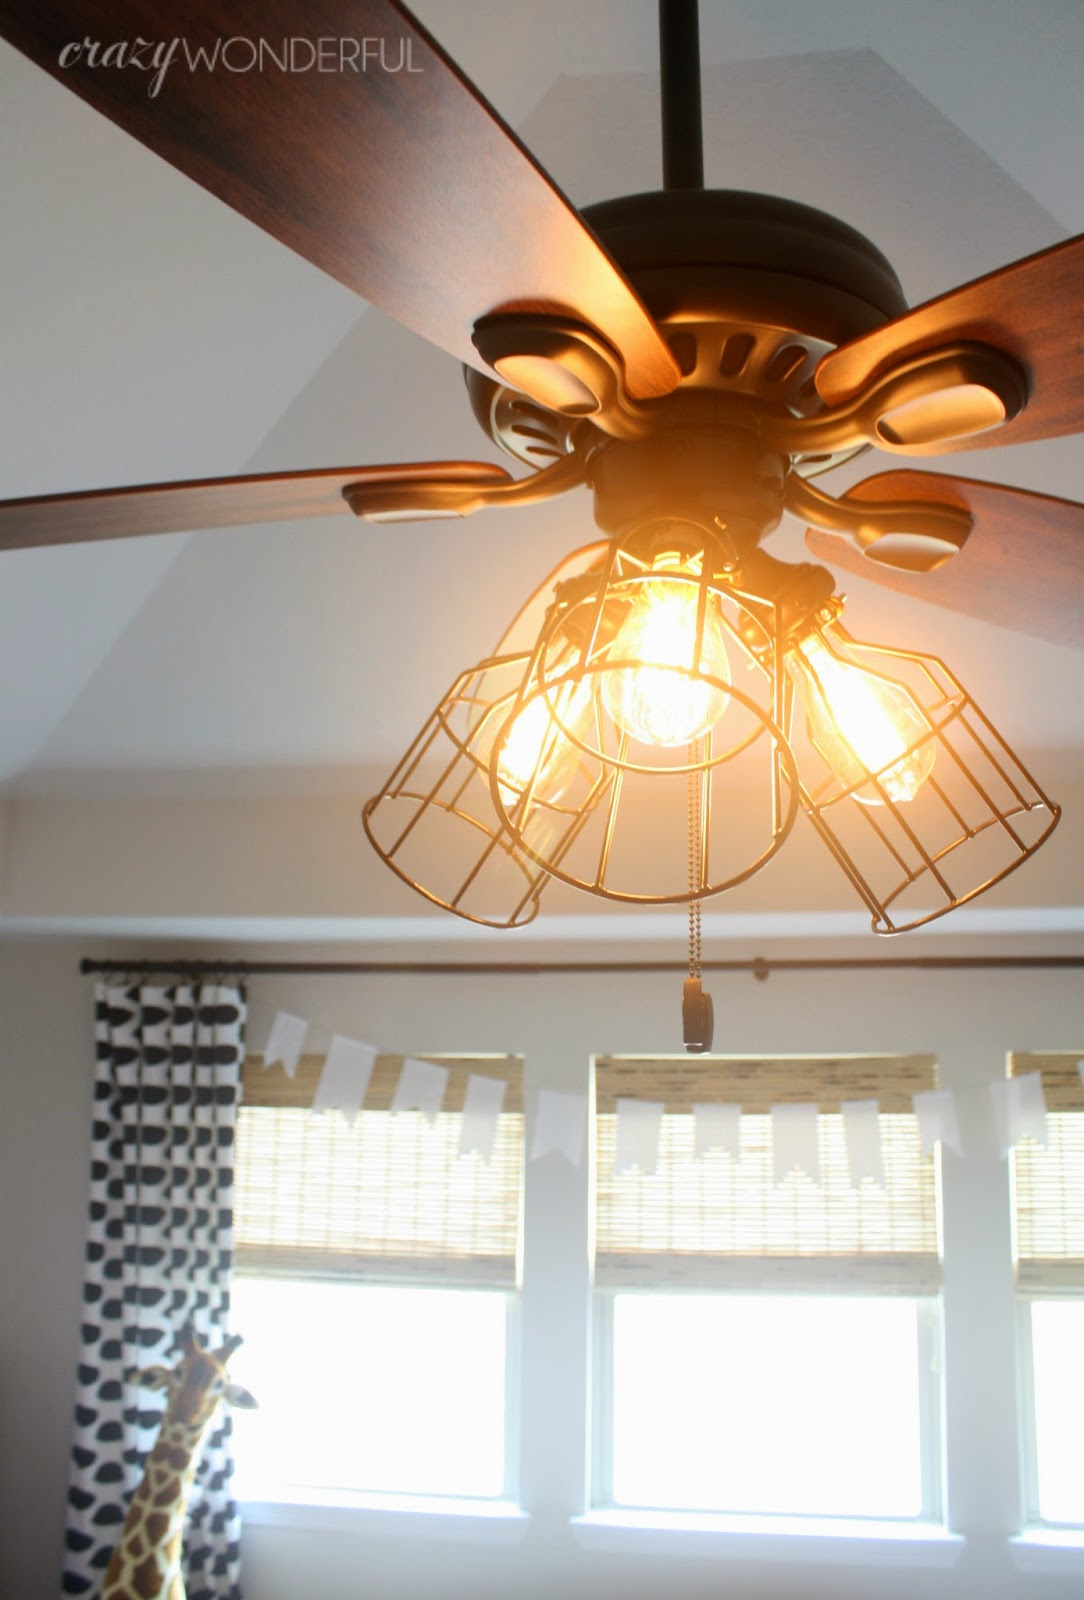 Diy Cage Light Ceiling Fan Crazy Wonderful